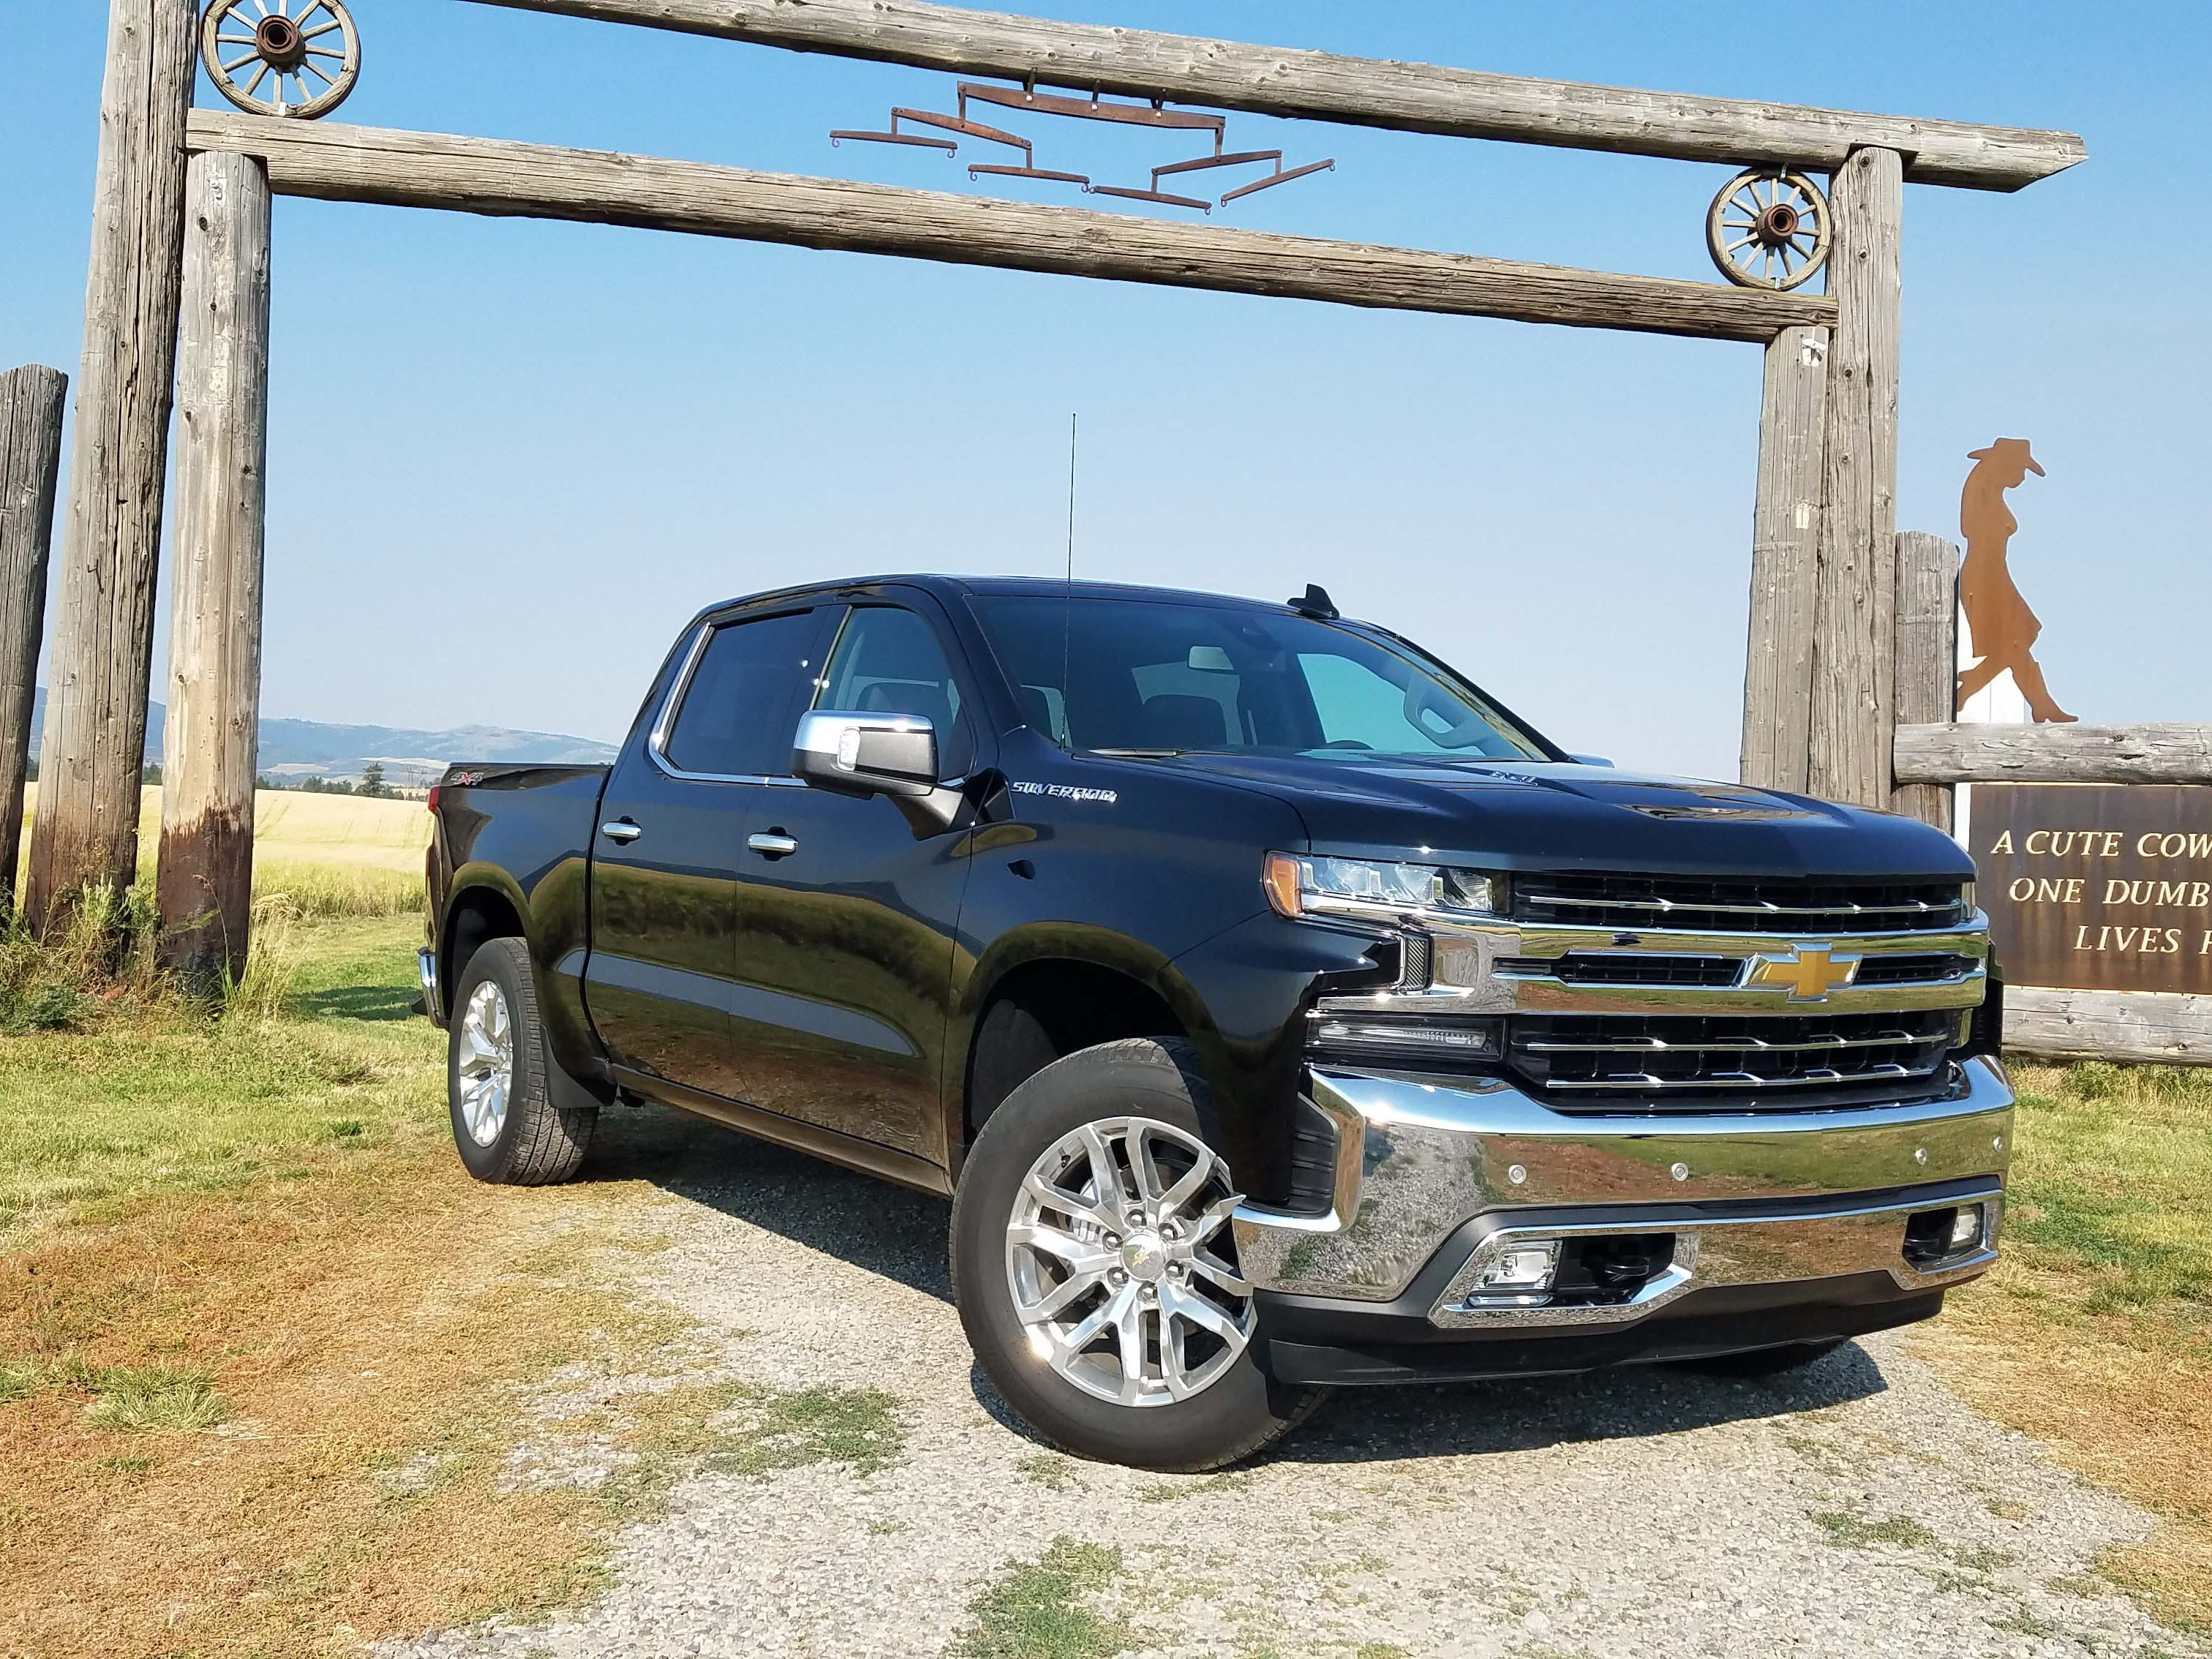 Truck of the Year nominee: With a light weighted chassis (by a significant 450 pounds) and improved rear leaf springs, the 2019 Chevy Silverado is actually fun to drive fast. Call it a Camaro with a bed.